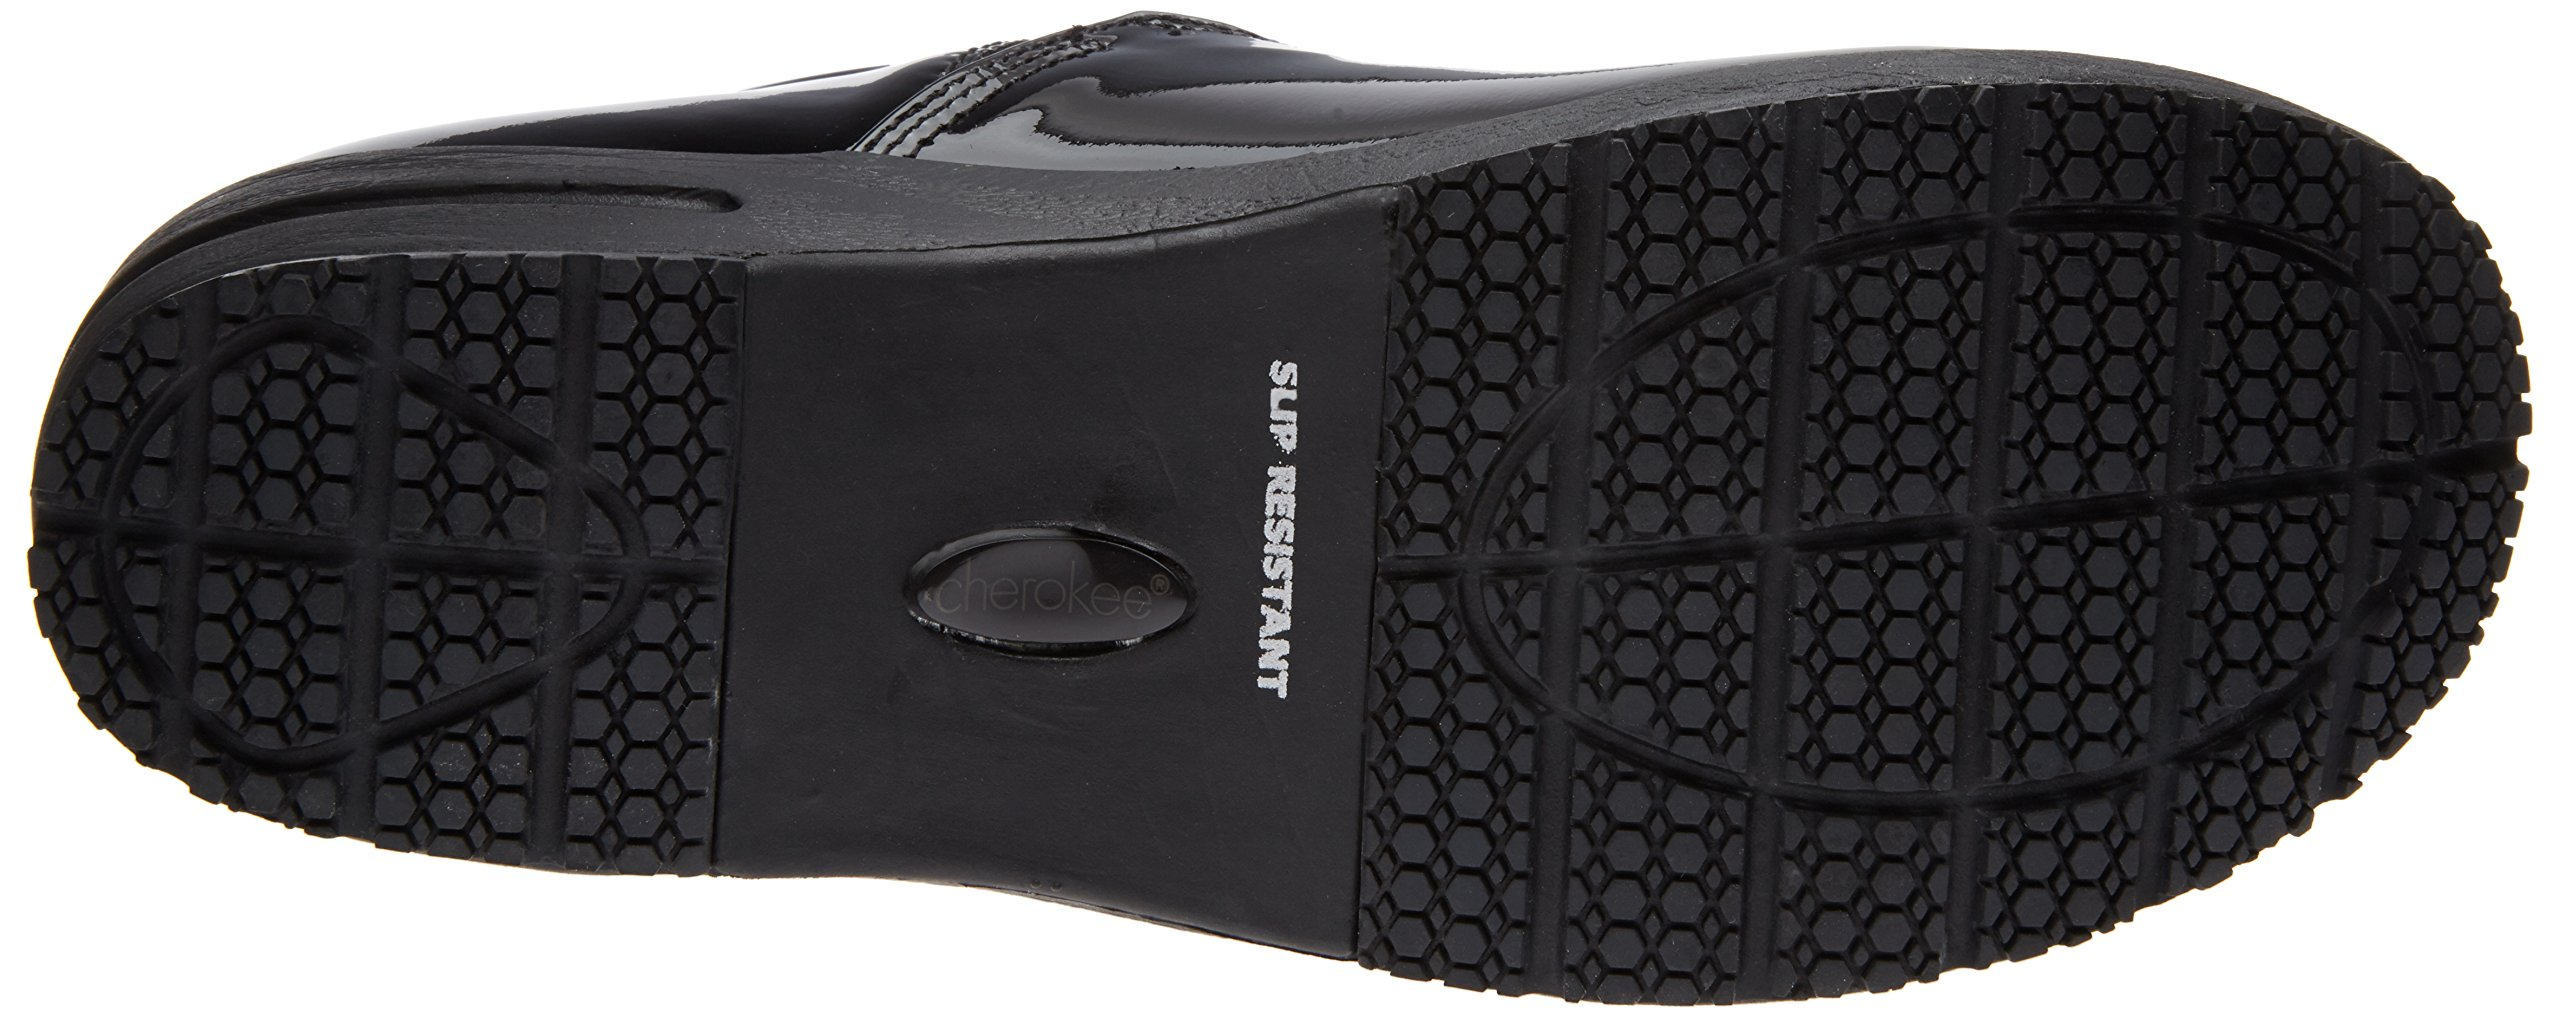 Cherokee Women's Patricia Step In Shoe, Black Patent, 6.5 M US by Cherokee (Image #3)